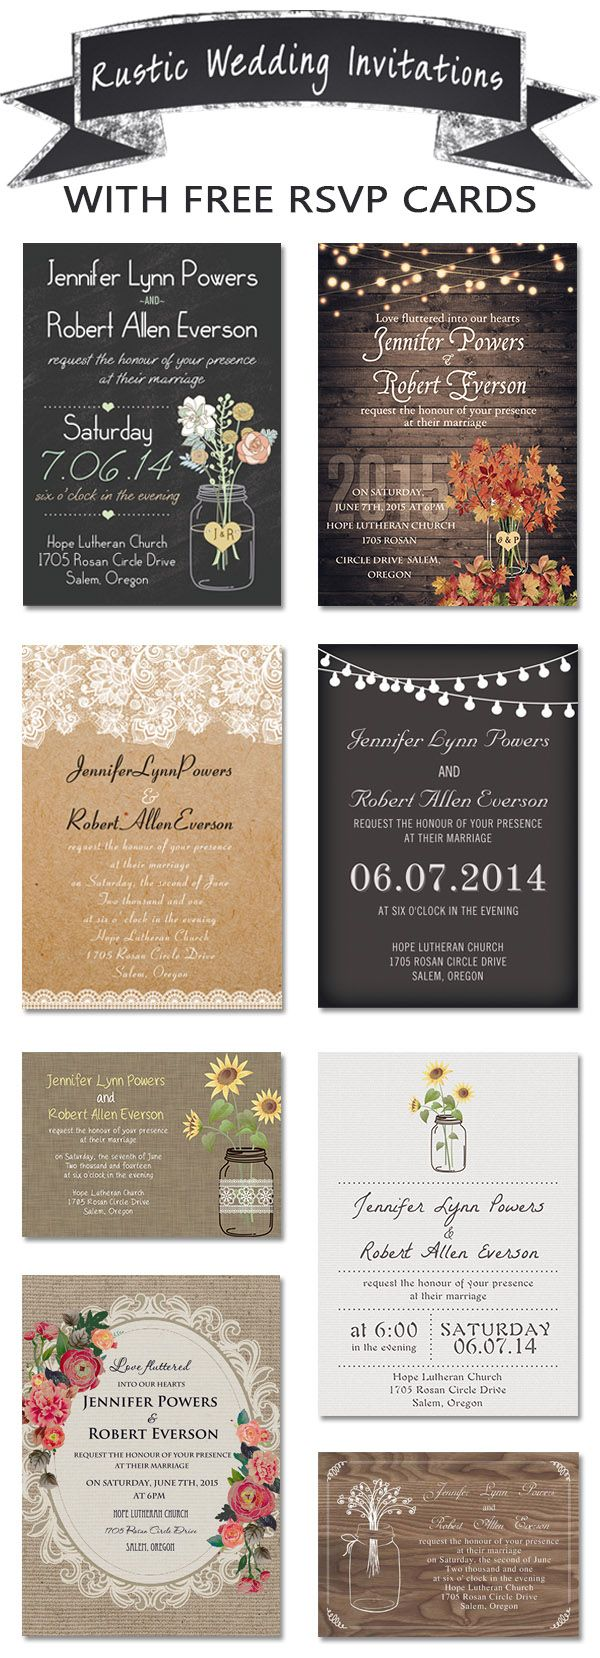 wedding renewal invitation ideas%0A Rustic wedding invitations   bellacollina com   Bella Collina Weddings   Wedding  Invitations  u     Save the Dates   Pinterest   Weddings  Wedding and Wedding